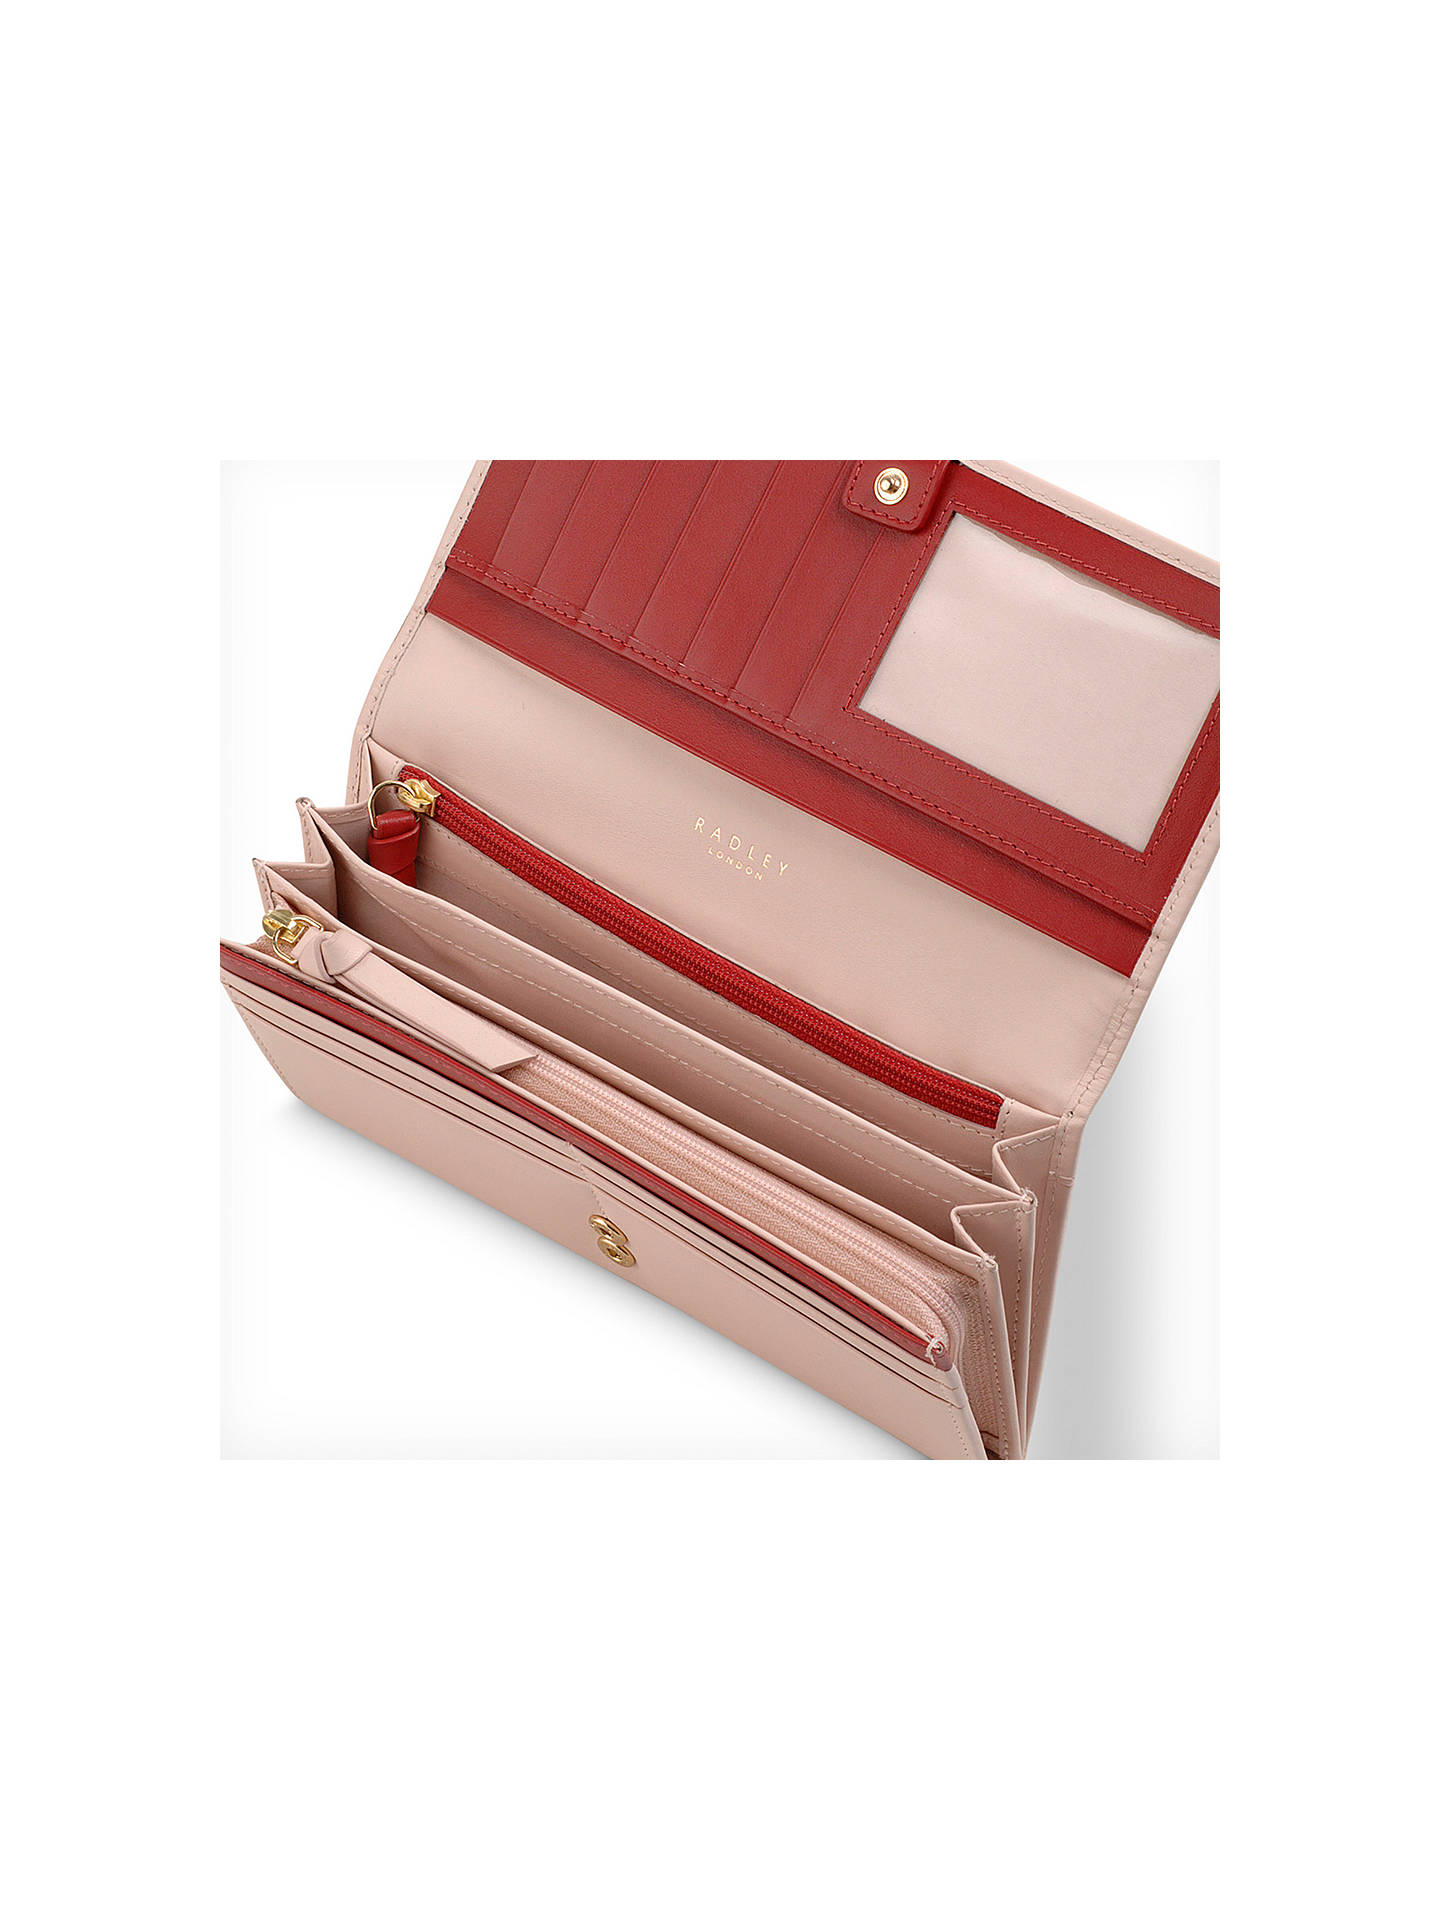 Buy Radley In Bloom Large Flapover Leather Matinee Purse, Blush Online at johnlewis.com